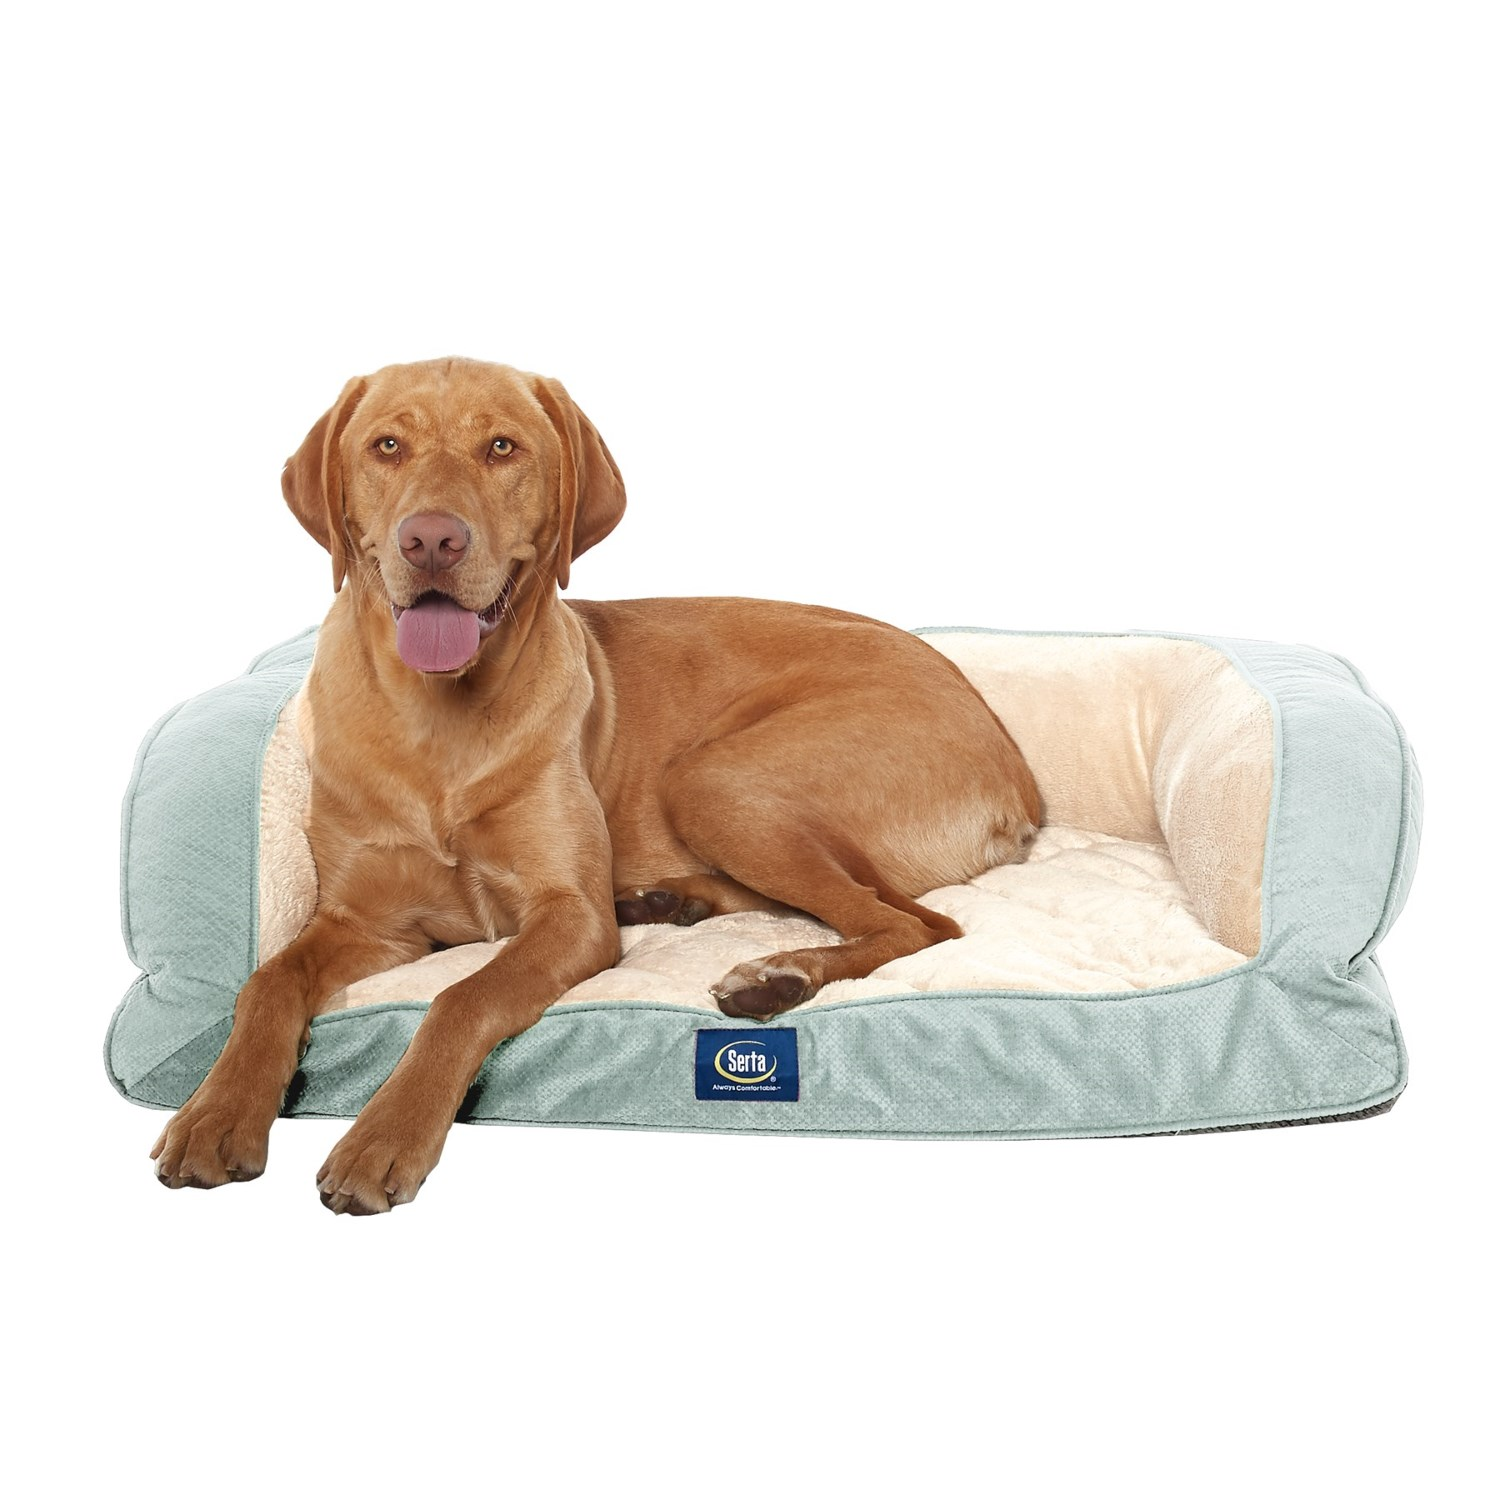 serta extra pet beds product pillow quilted dog large quiltedpillowtop bed top